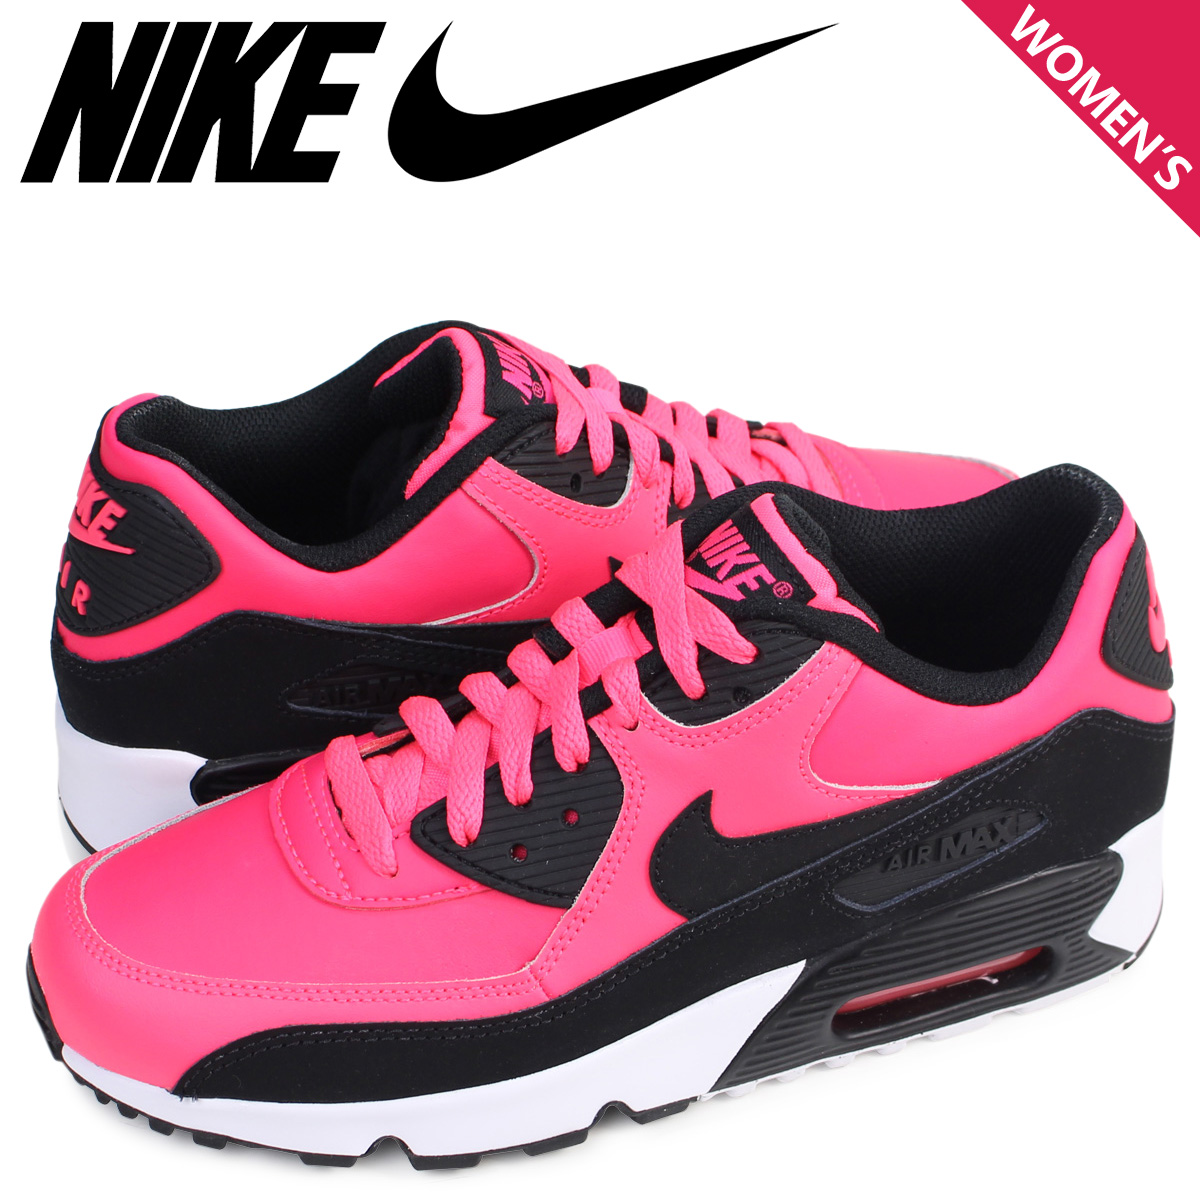 outlet store 74082 5c0d1 NIKE Nike air force 90 lady s sneakers AIR MAX 90 LTR GS 833,376-600 shoes  pink  load planned Shinnyu load in reservation product 8 12 containing    178